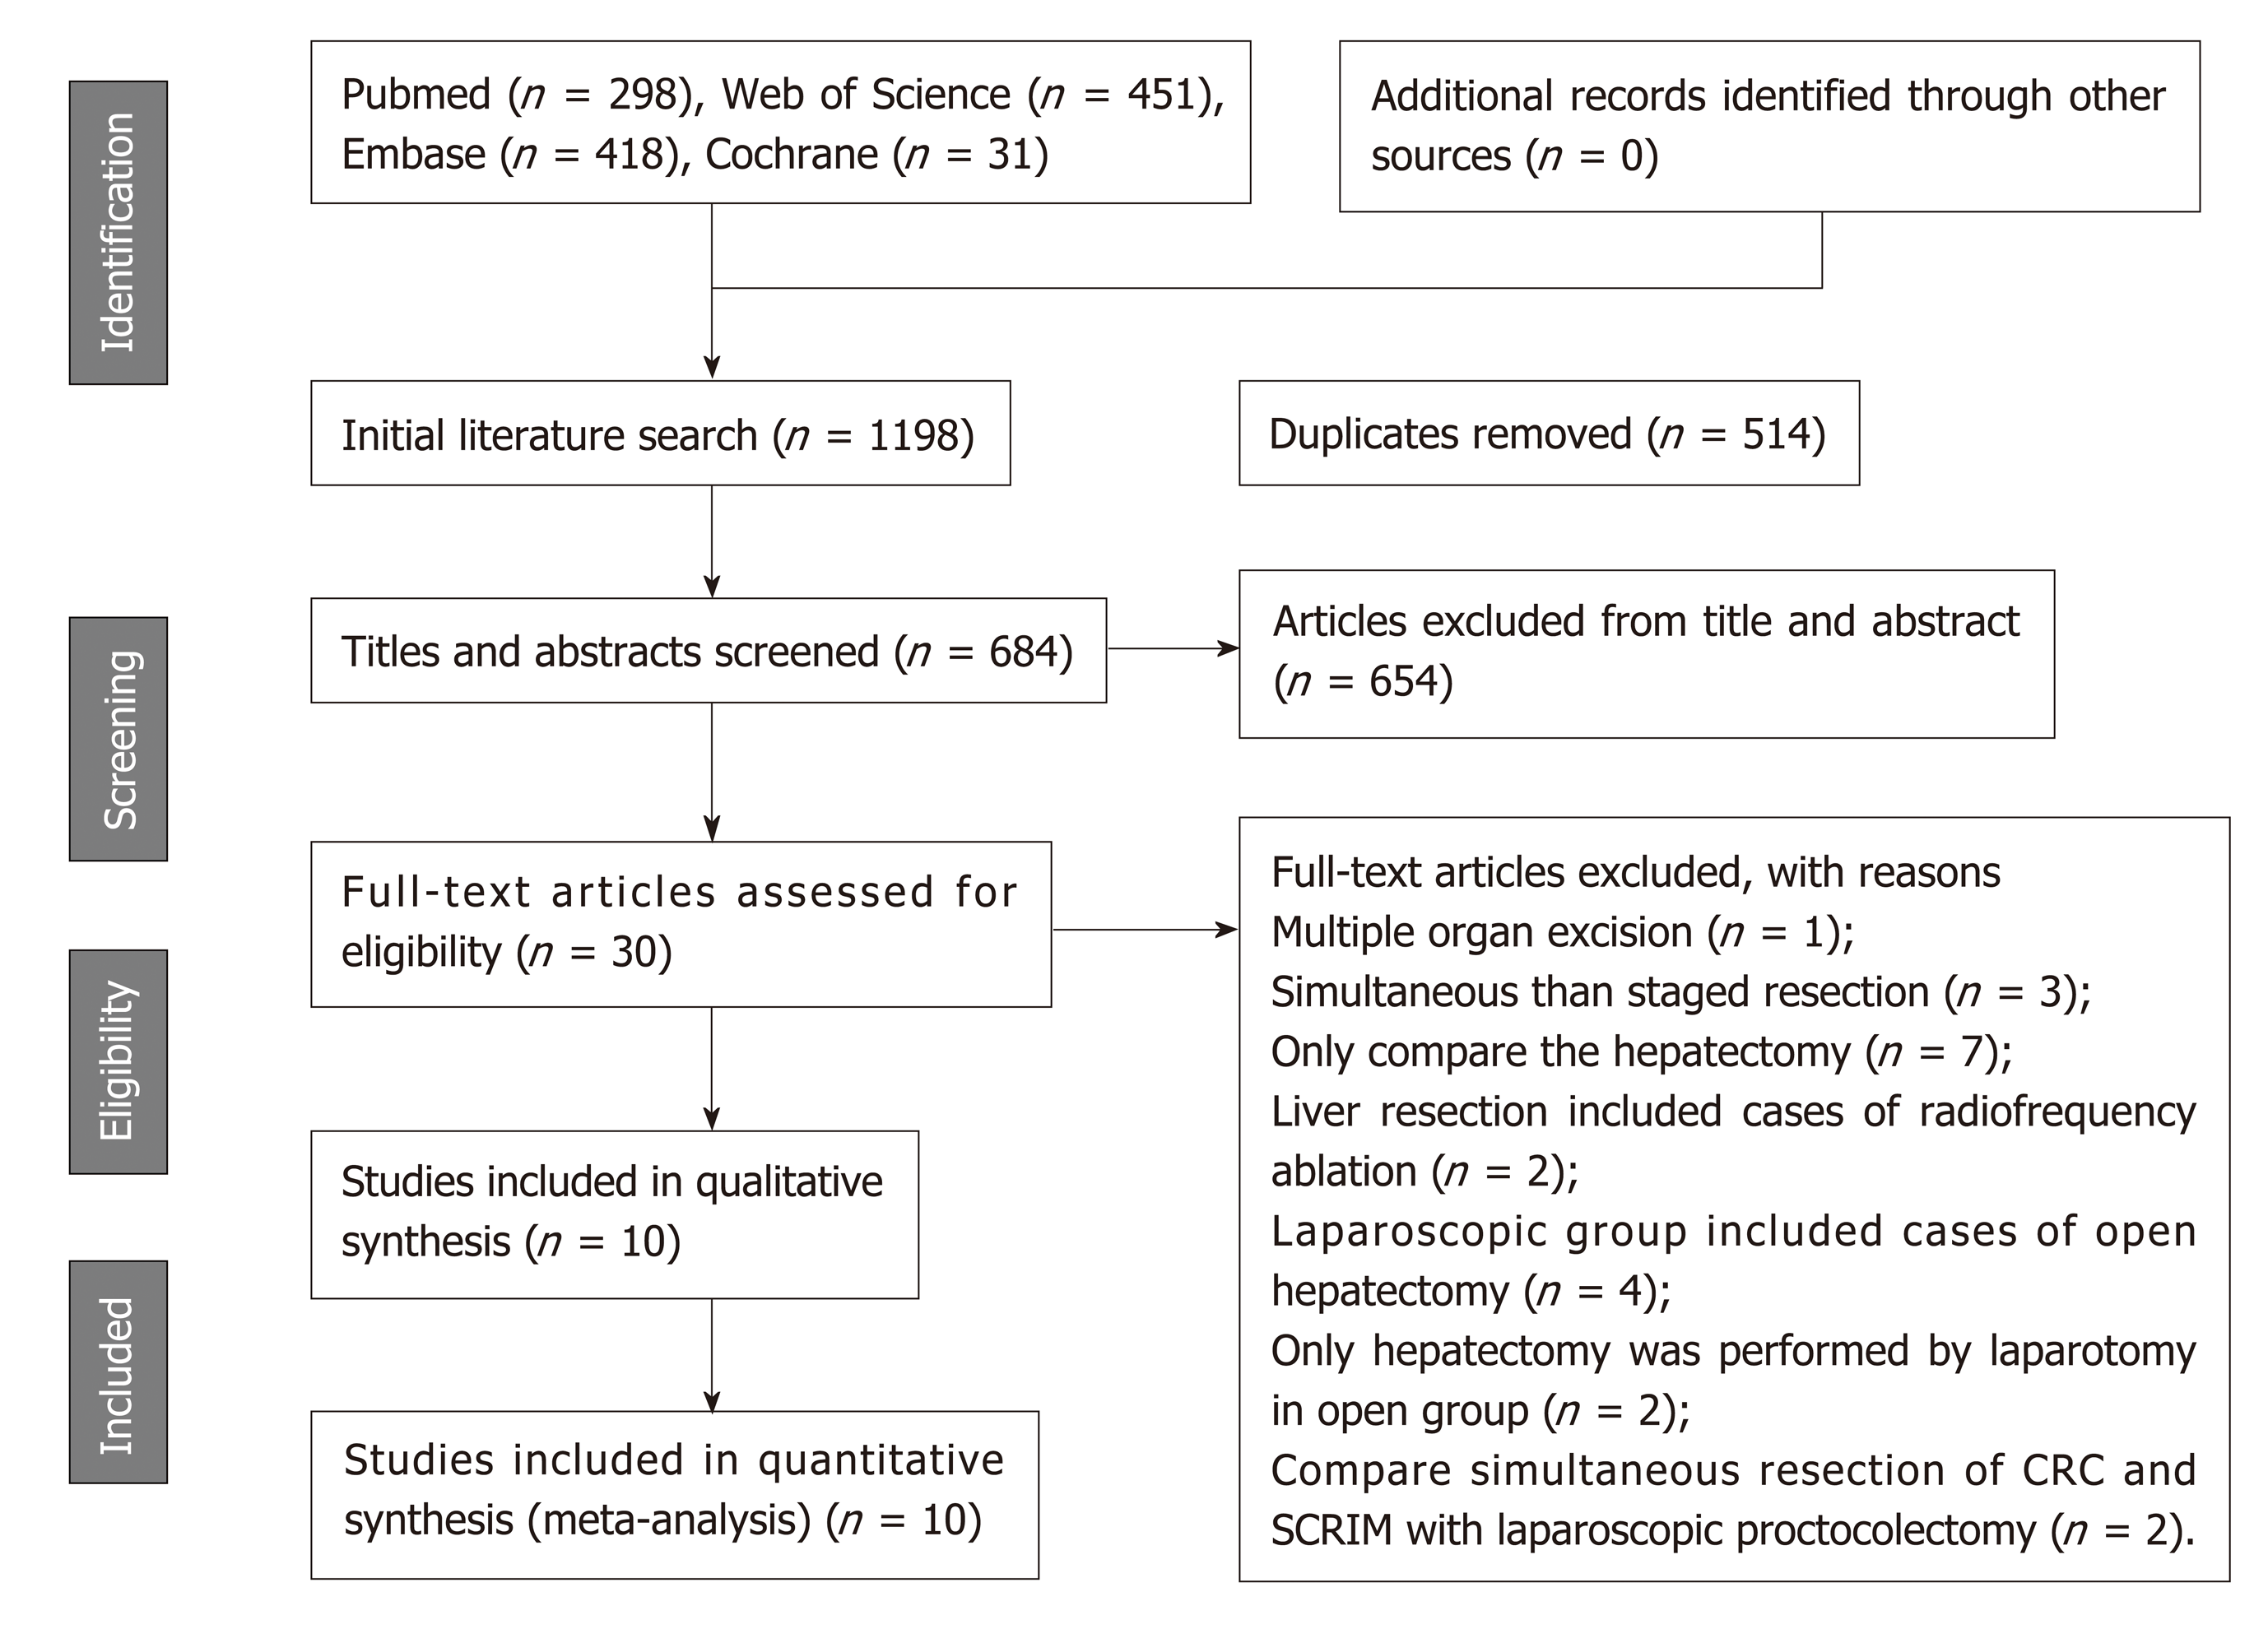 Mini Invasive Vs Open Resection Of Colorectal Cancer And Liver Metastases A Meta Analysis